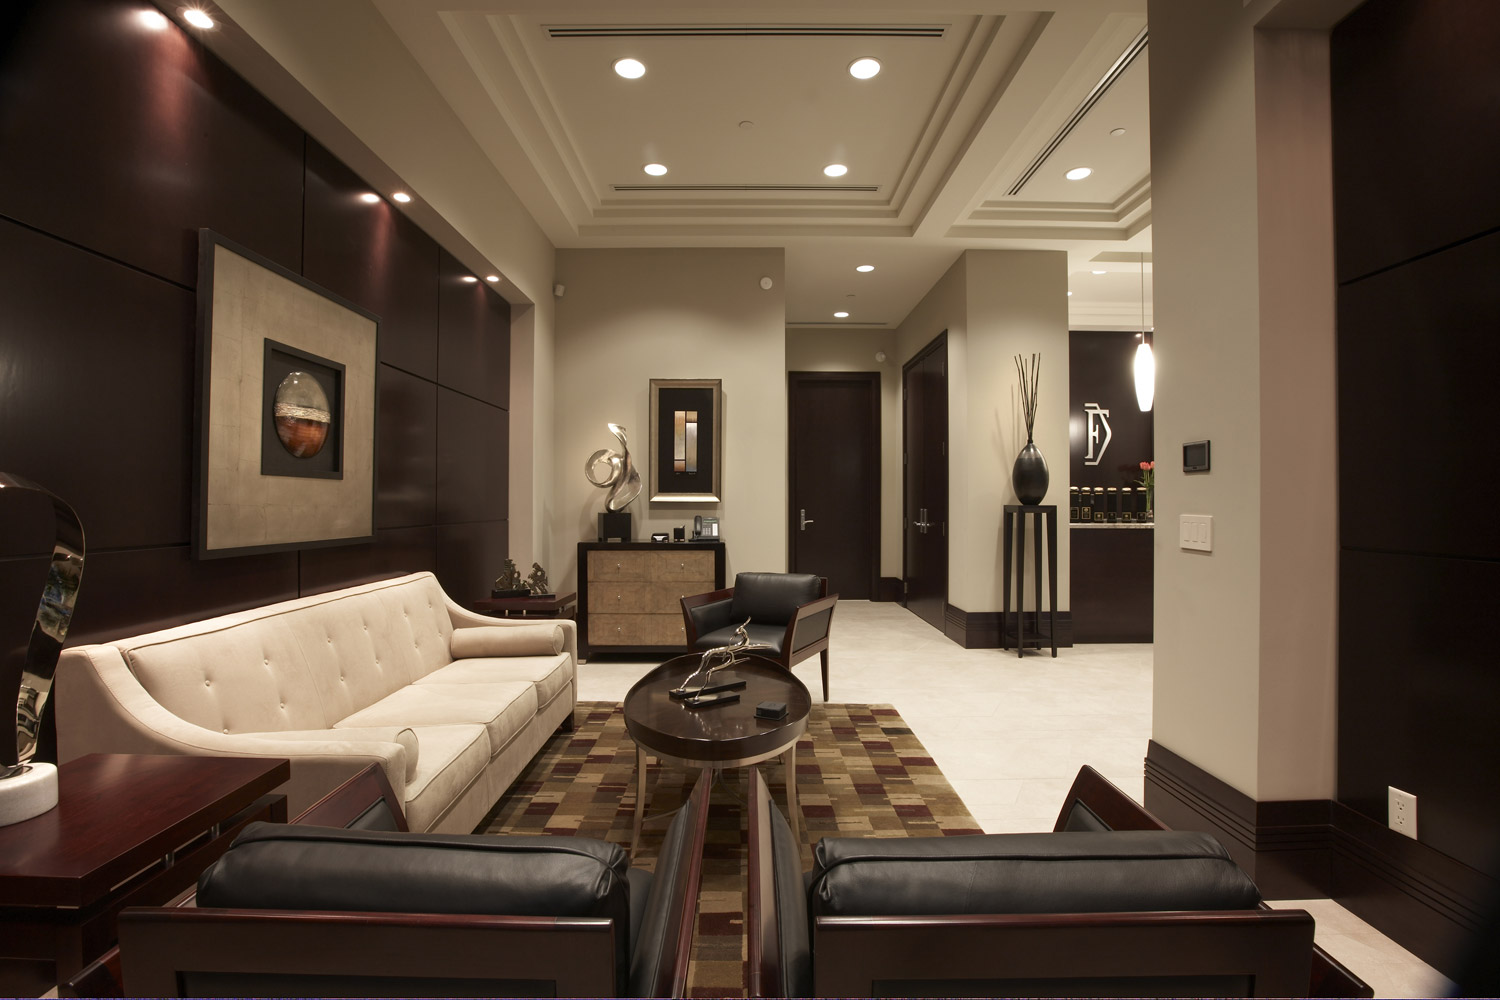 21st century architecture fdm designs elegant gta interiors for Elegant interior designs